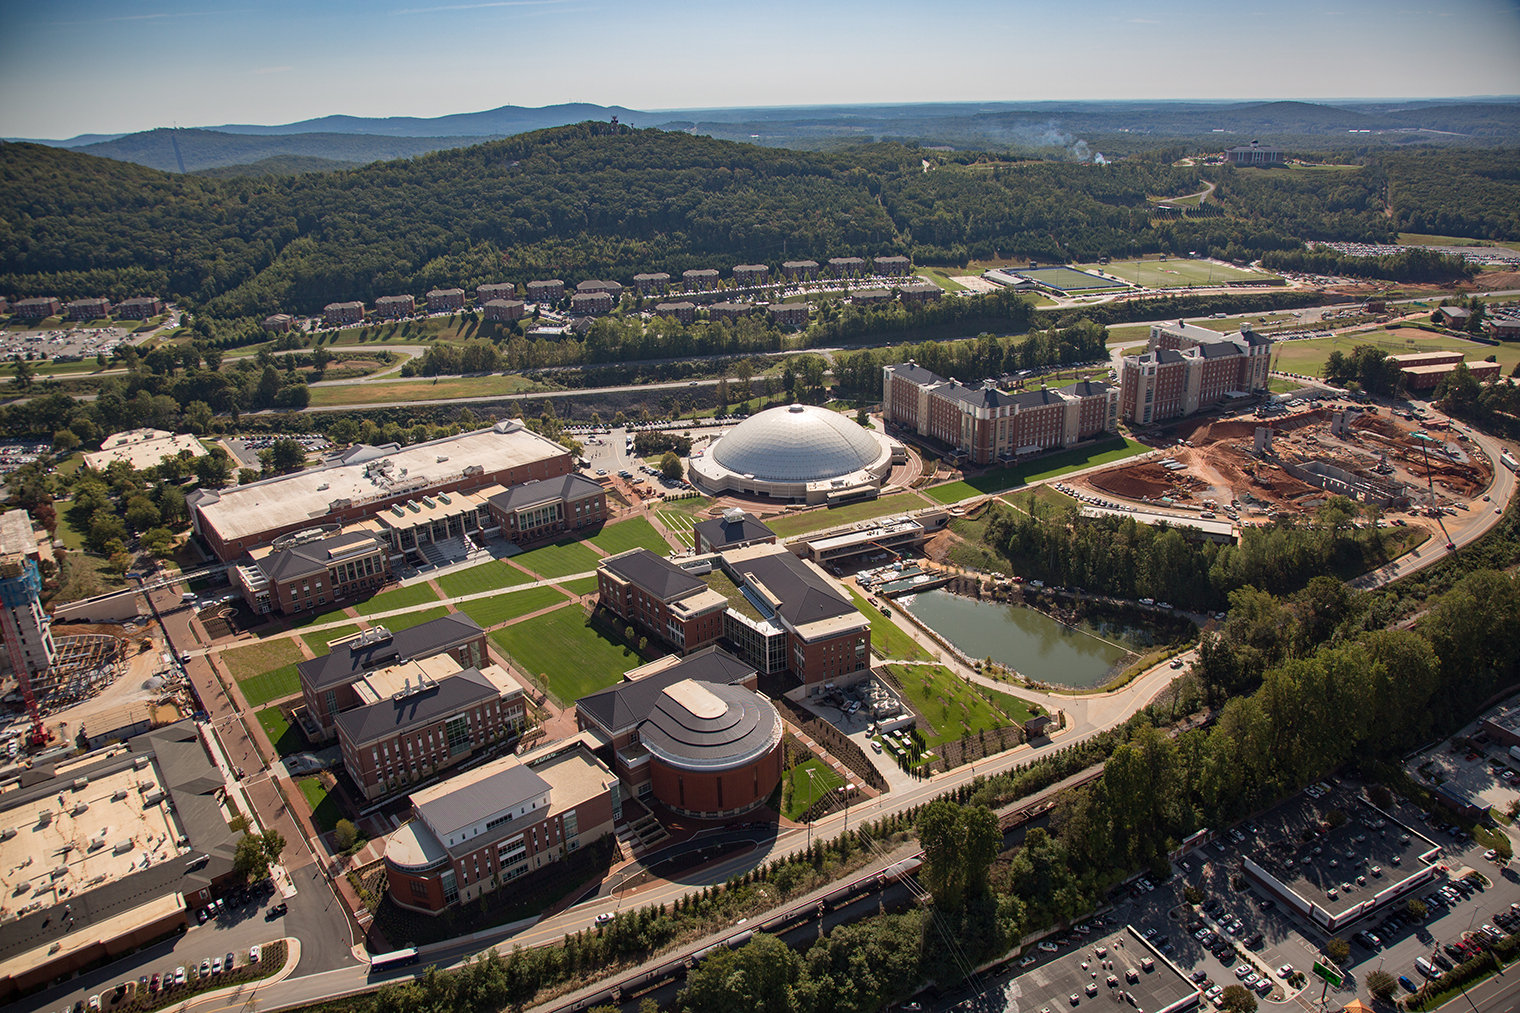 An aerial view of the Liberty University campus.